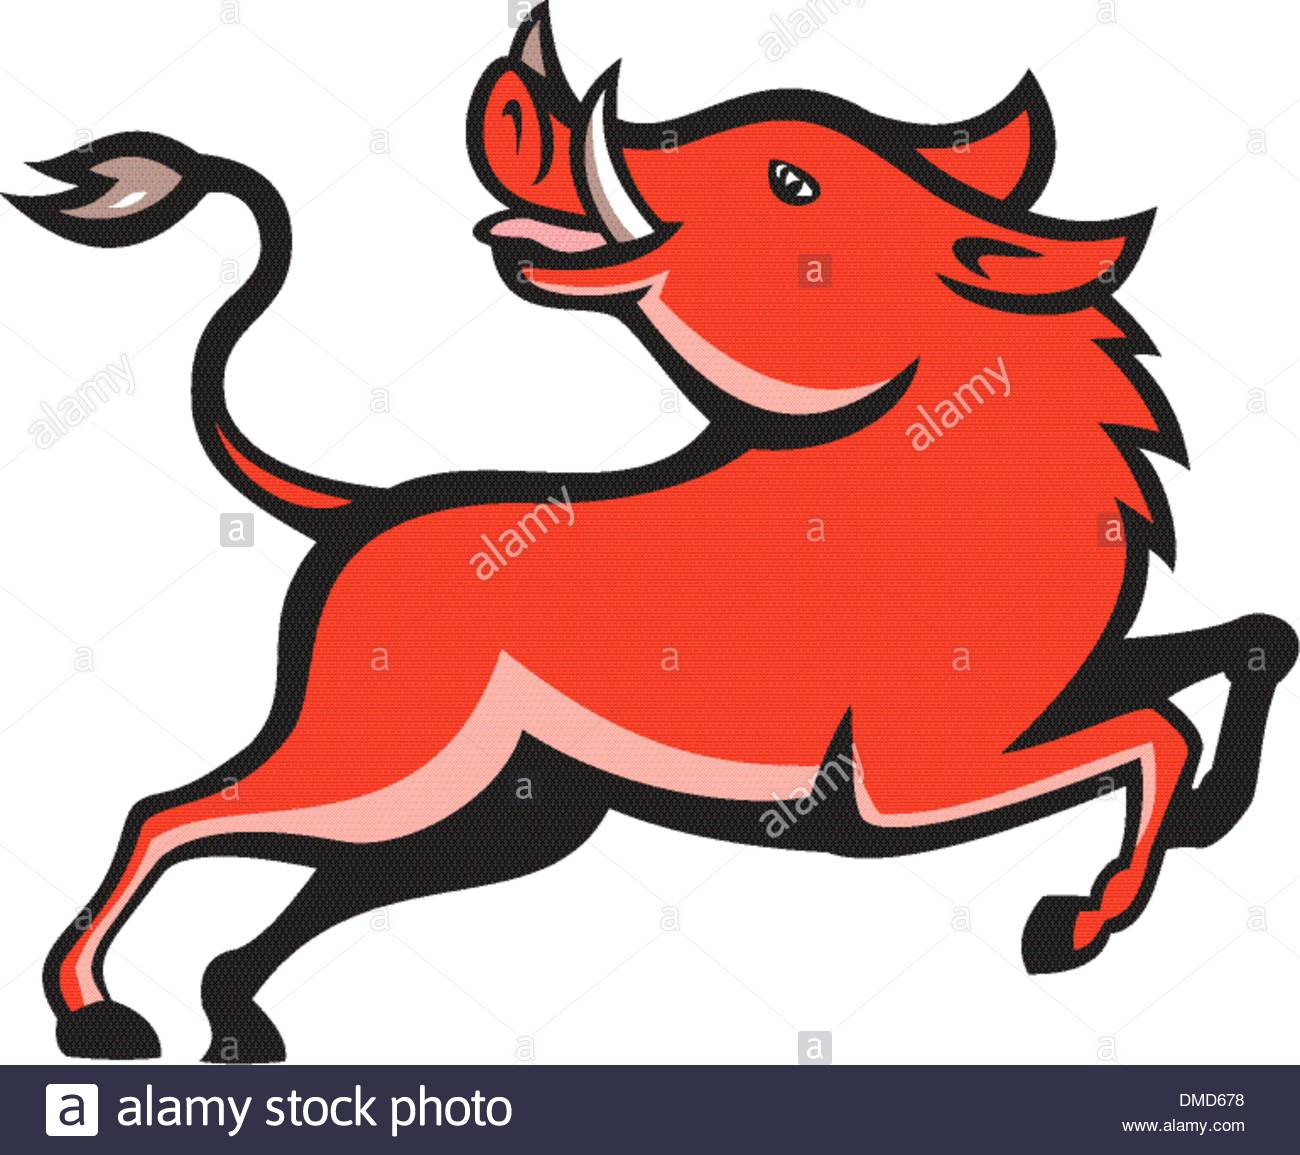 1300x1155 Wild Pig Razorback Hog Stock Vector Art Amp Illustration, Vector